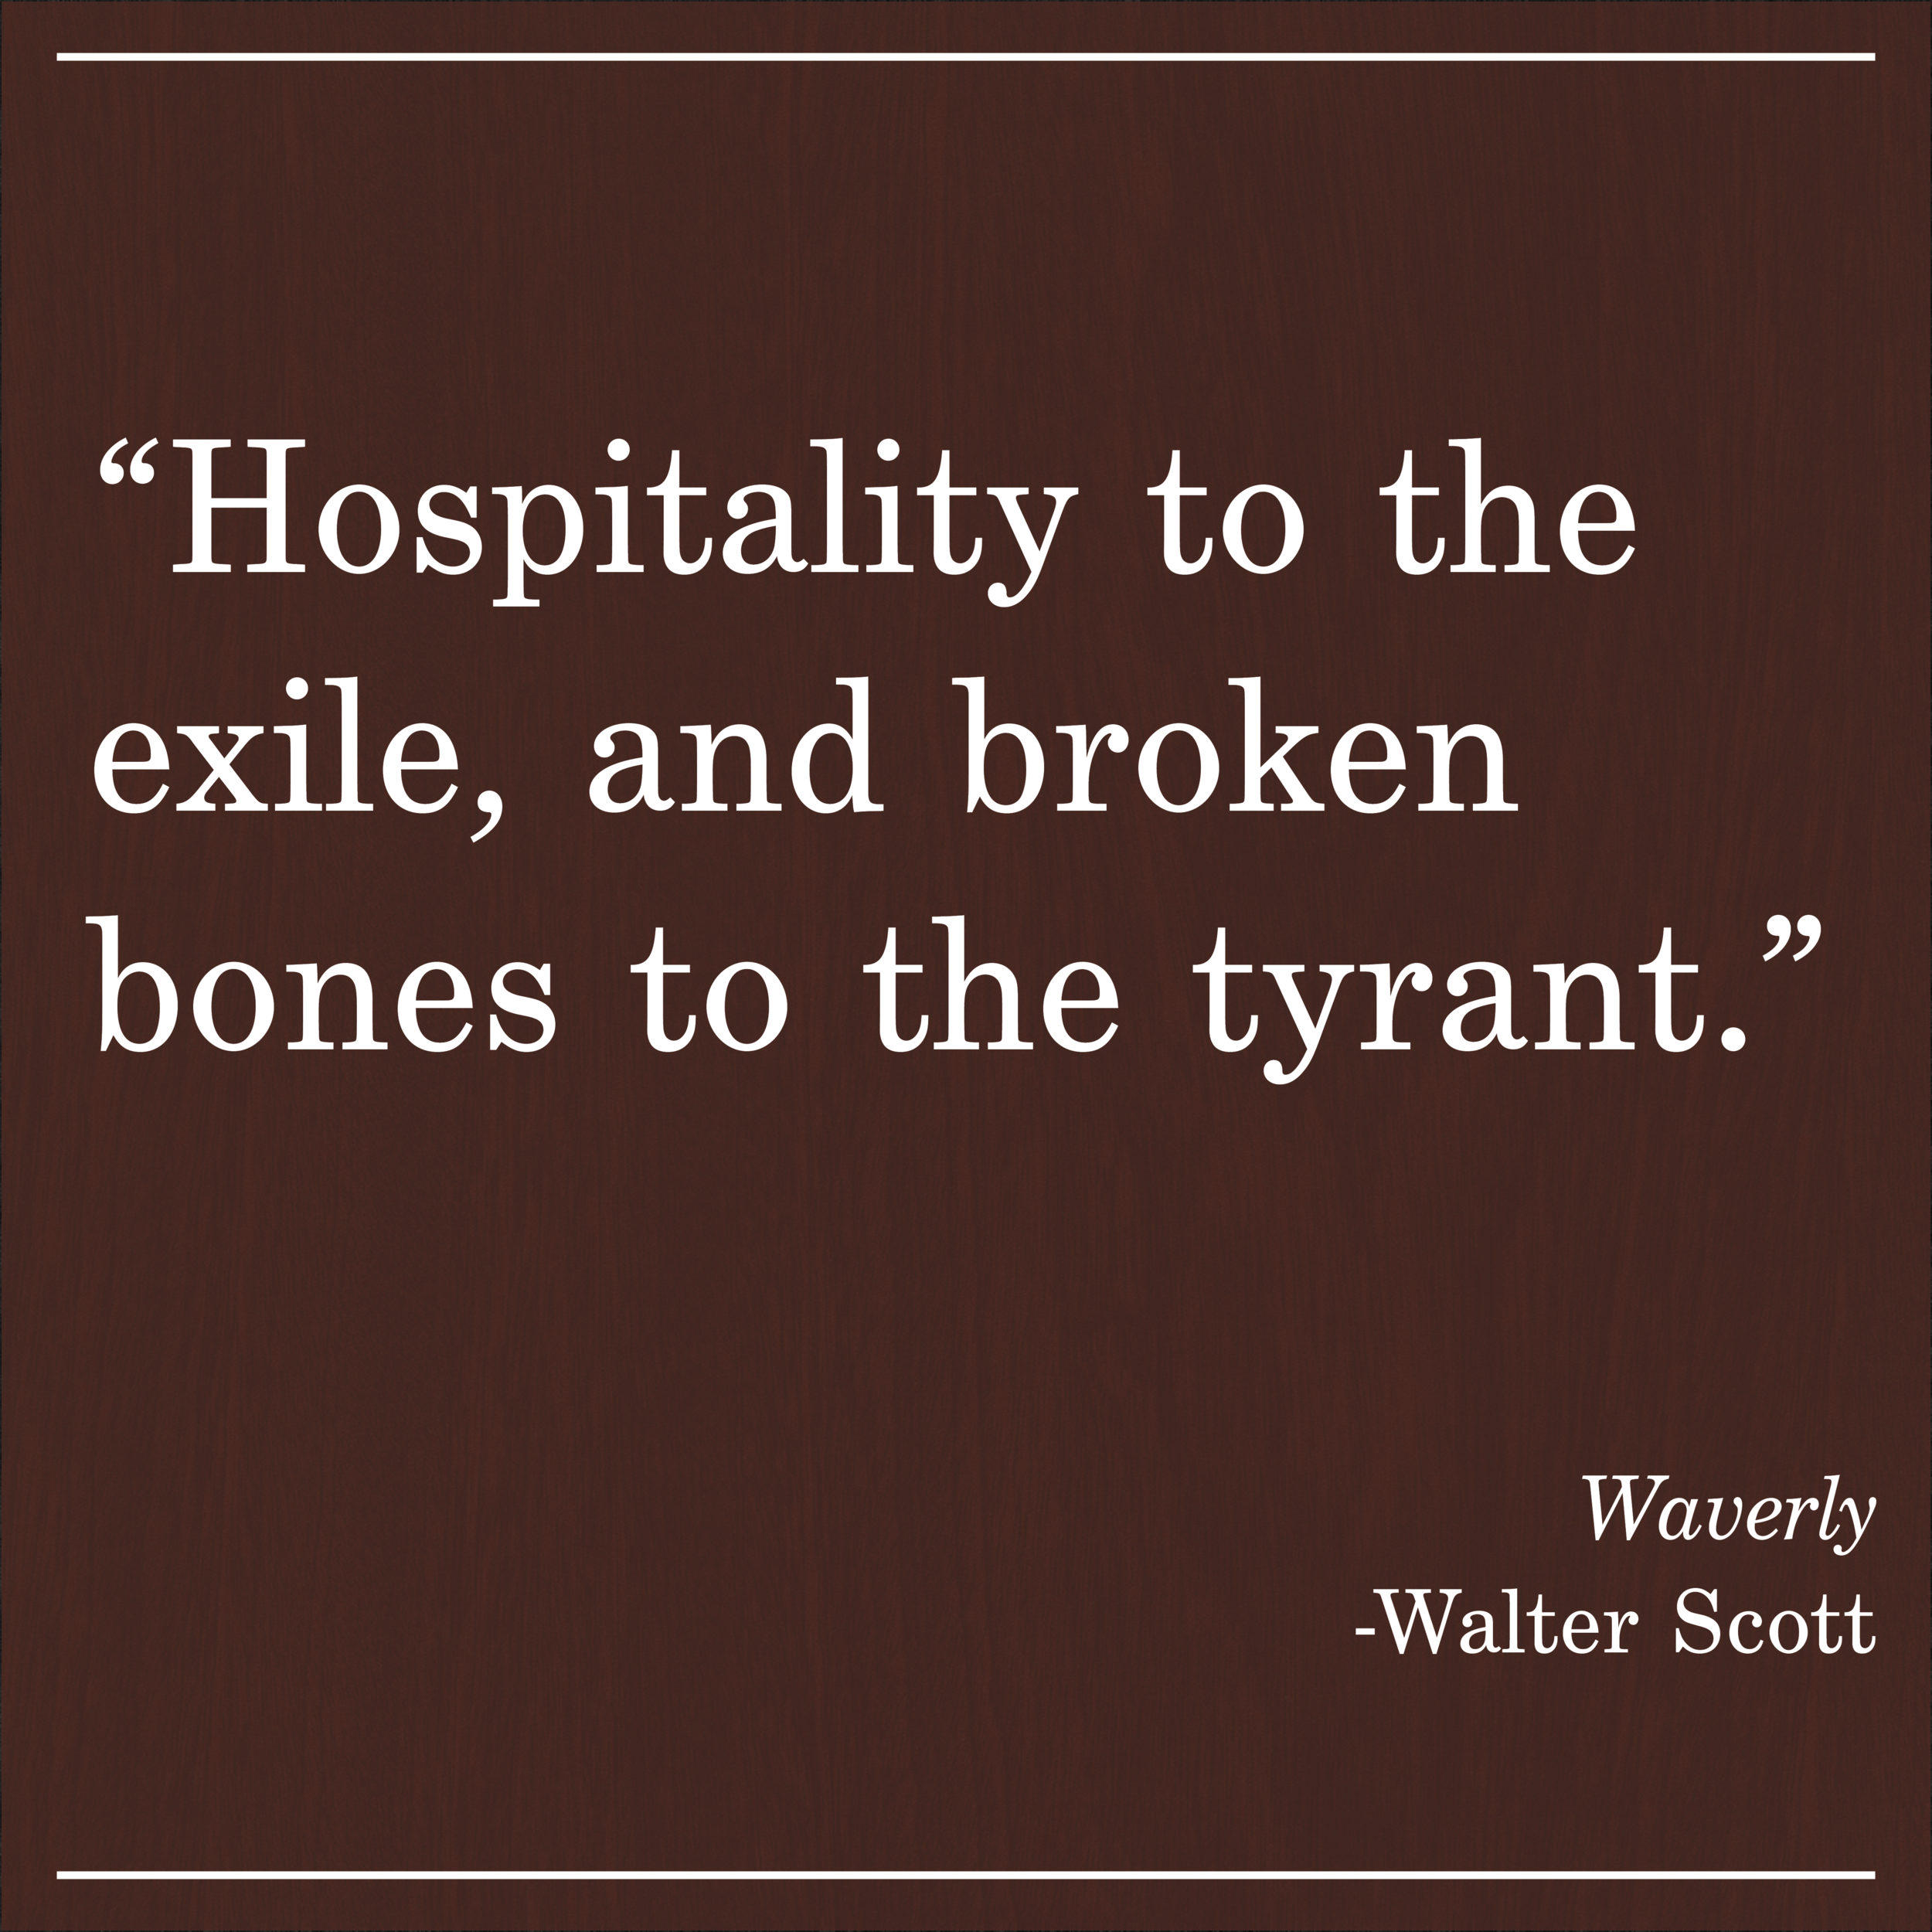 Daily Quote Waverly by Walter Scott